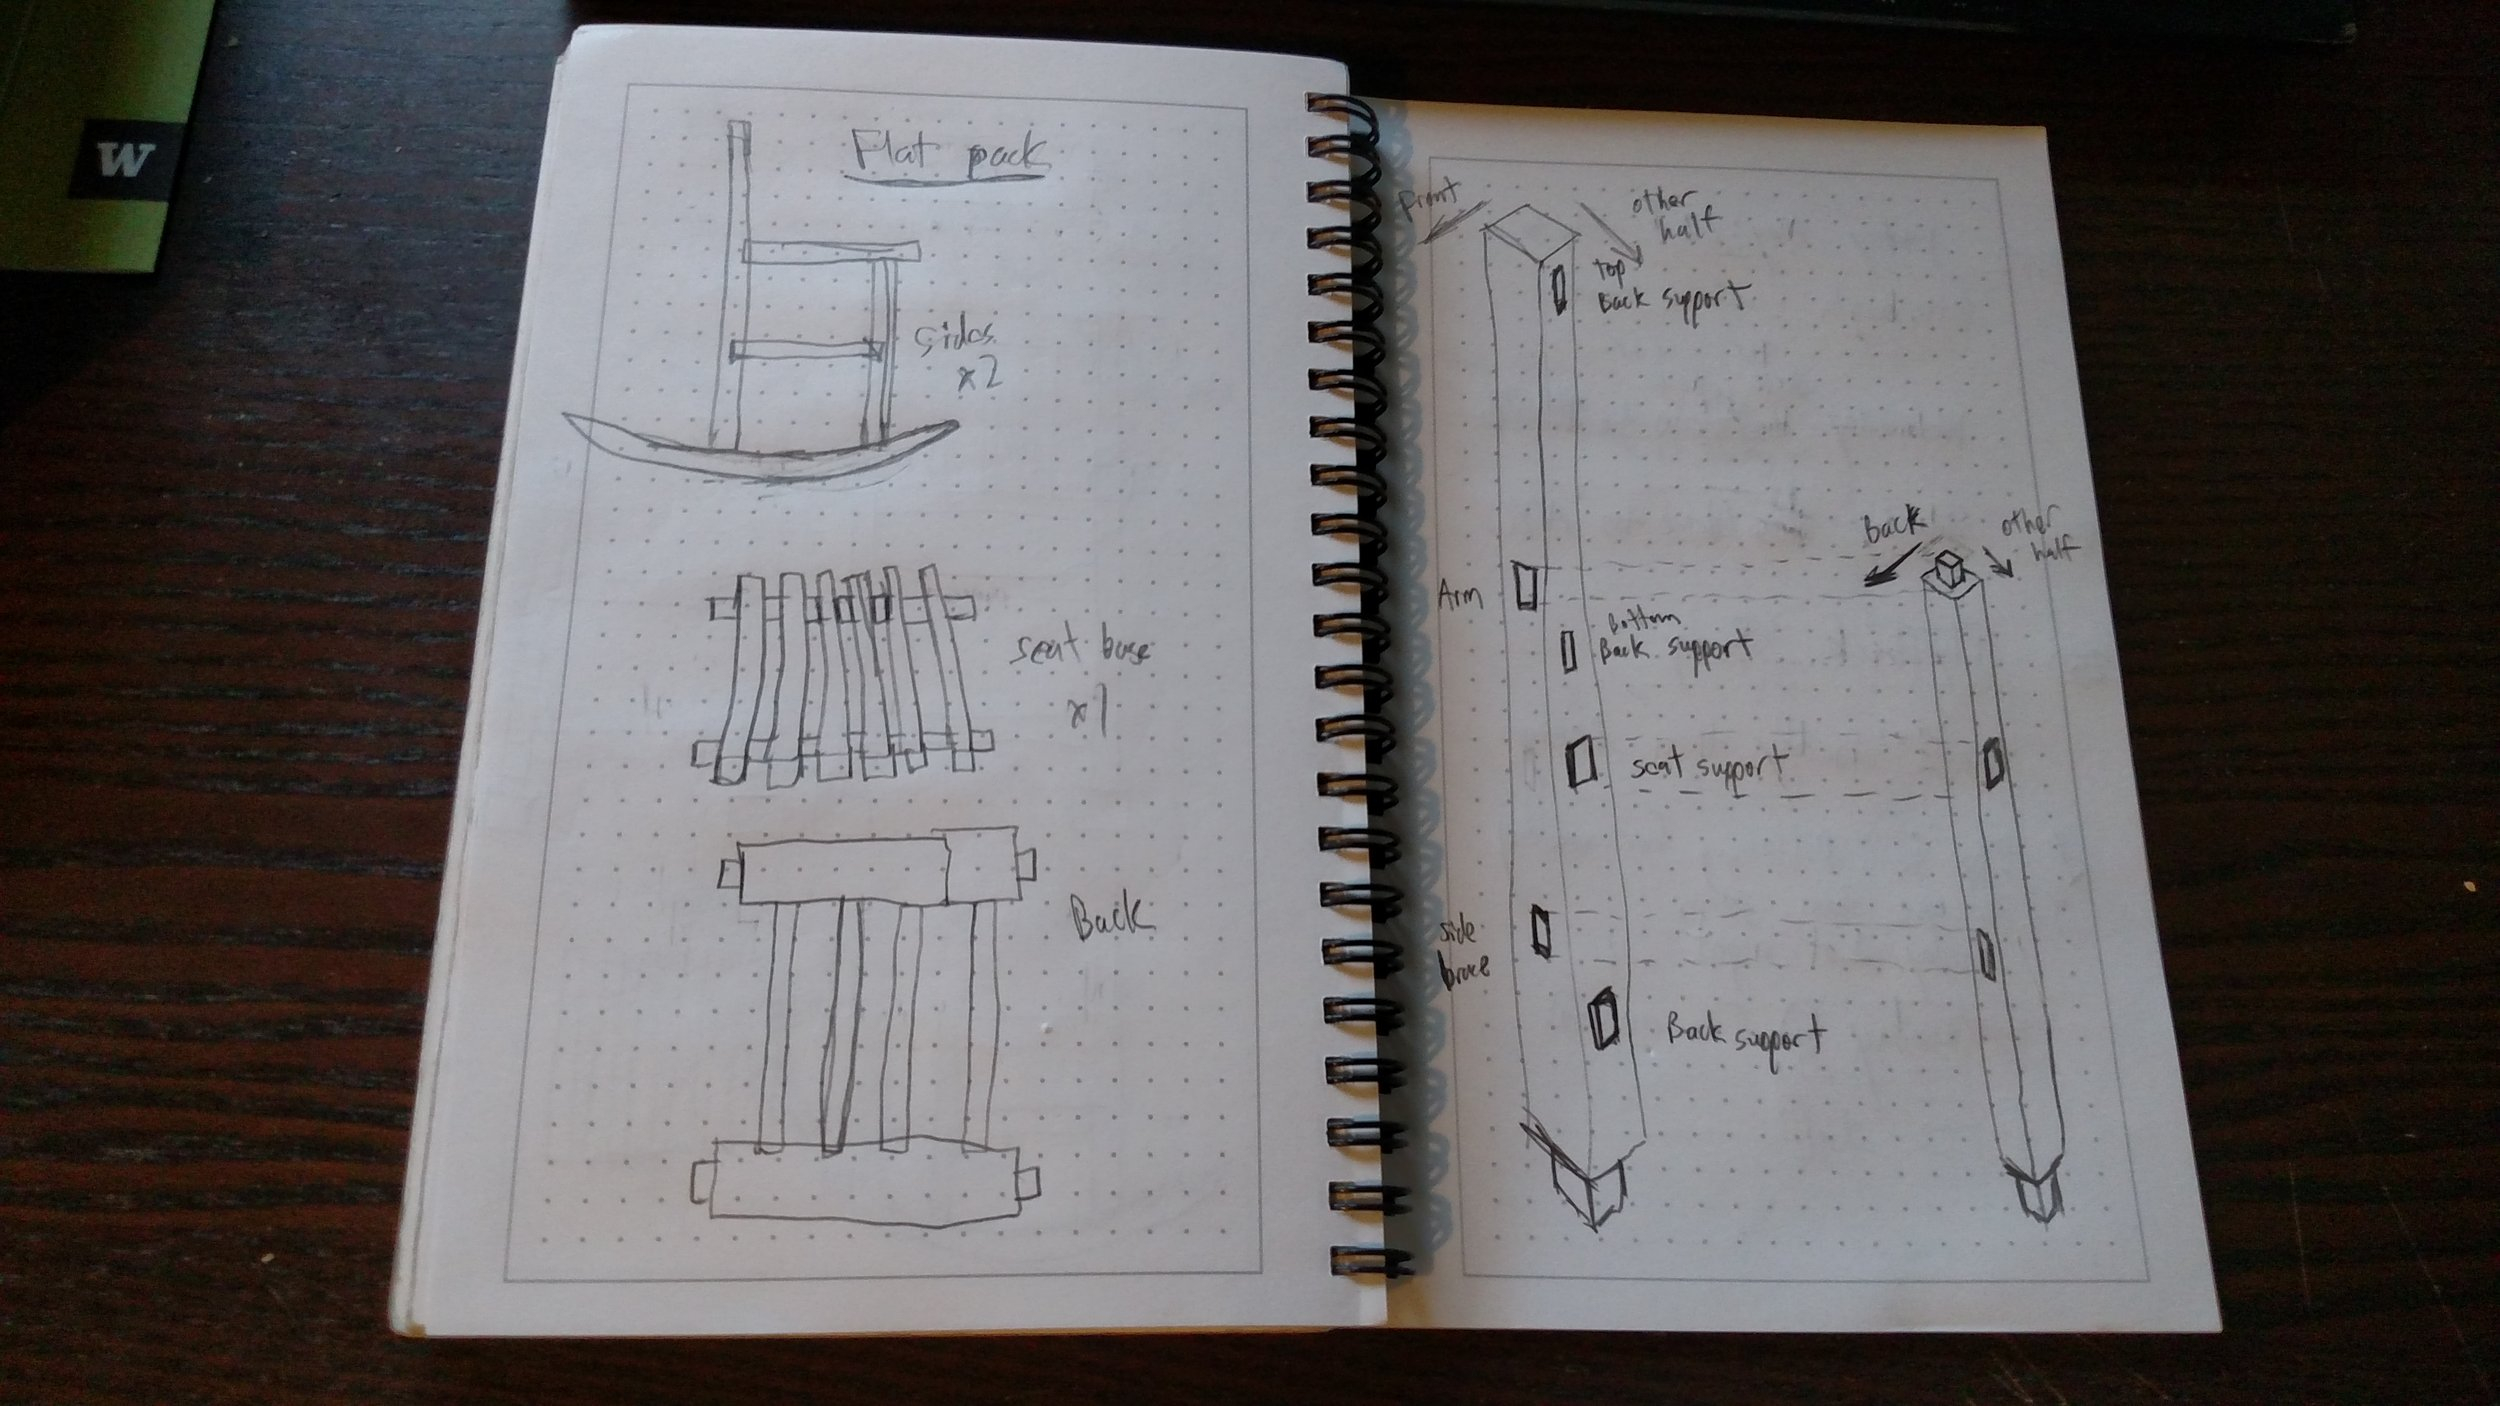 The plans for the rocking chair.